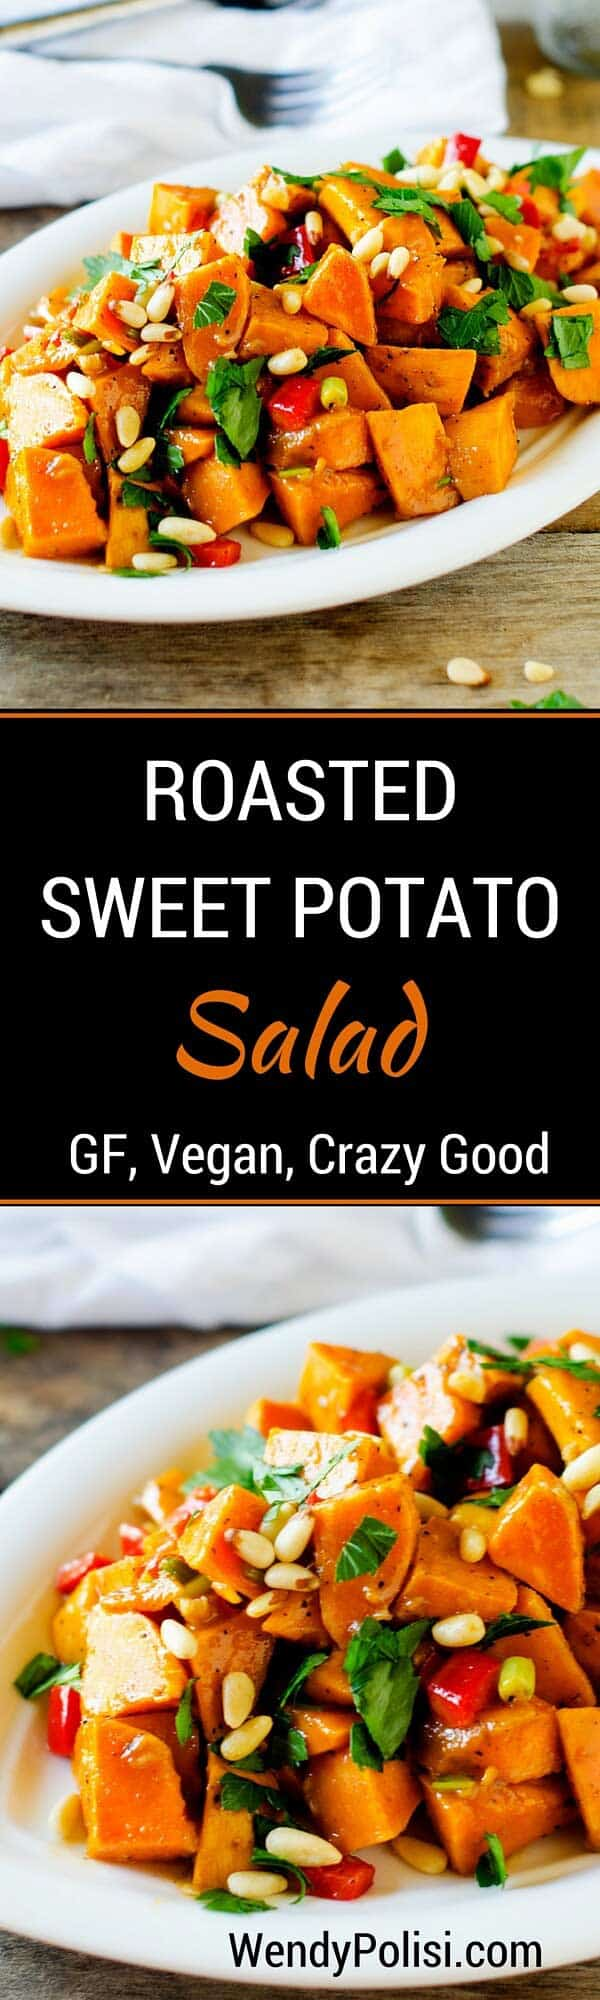 This Roasted Sweet Potato Salad Recipe is a healthy side dish that is so easy to make. Throw in some quinoa, kale or black beans to make this a complete meal. This healthy sweet potato salad is vegan and naturally gluten free.  #vegan #glutenfree #saladrecipe #veganrecipe